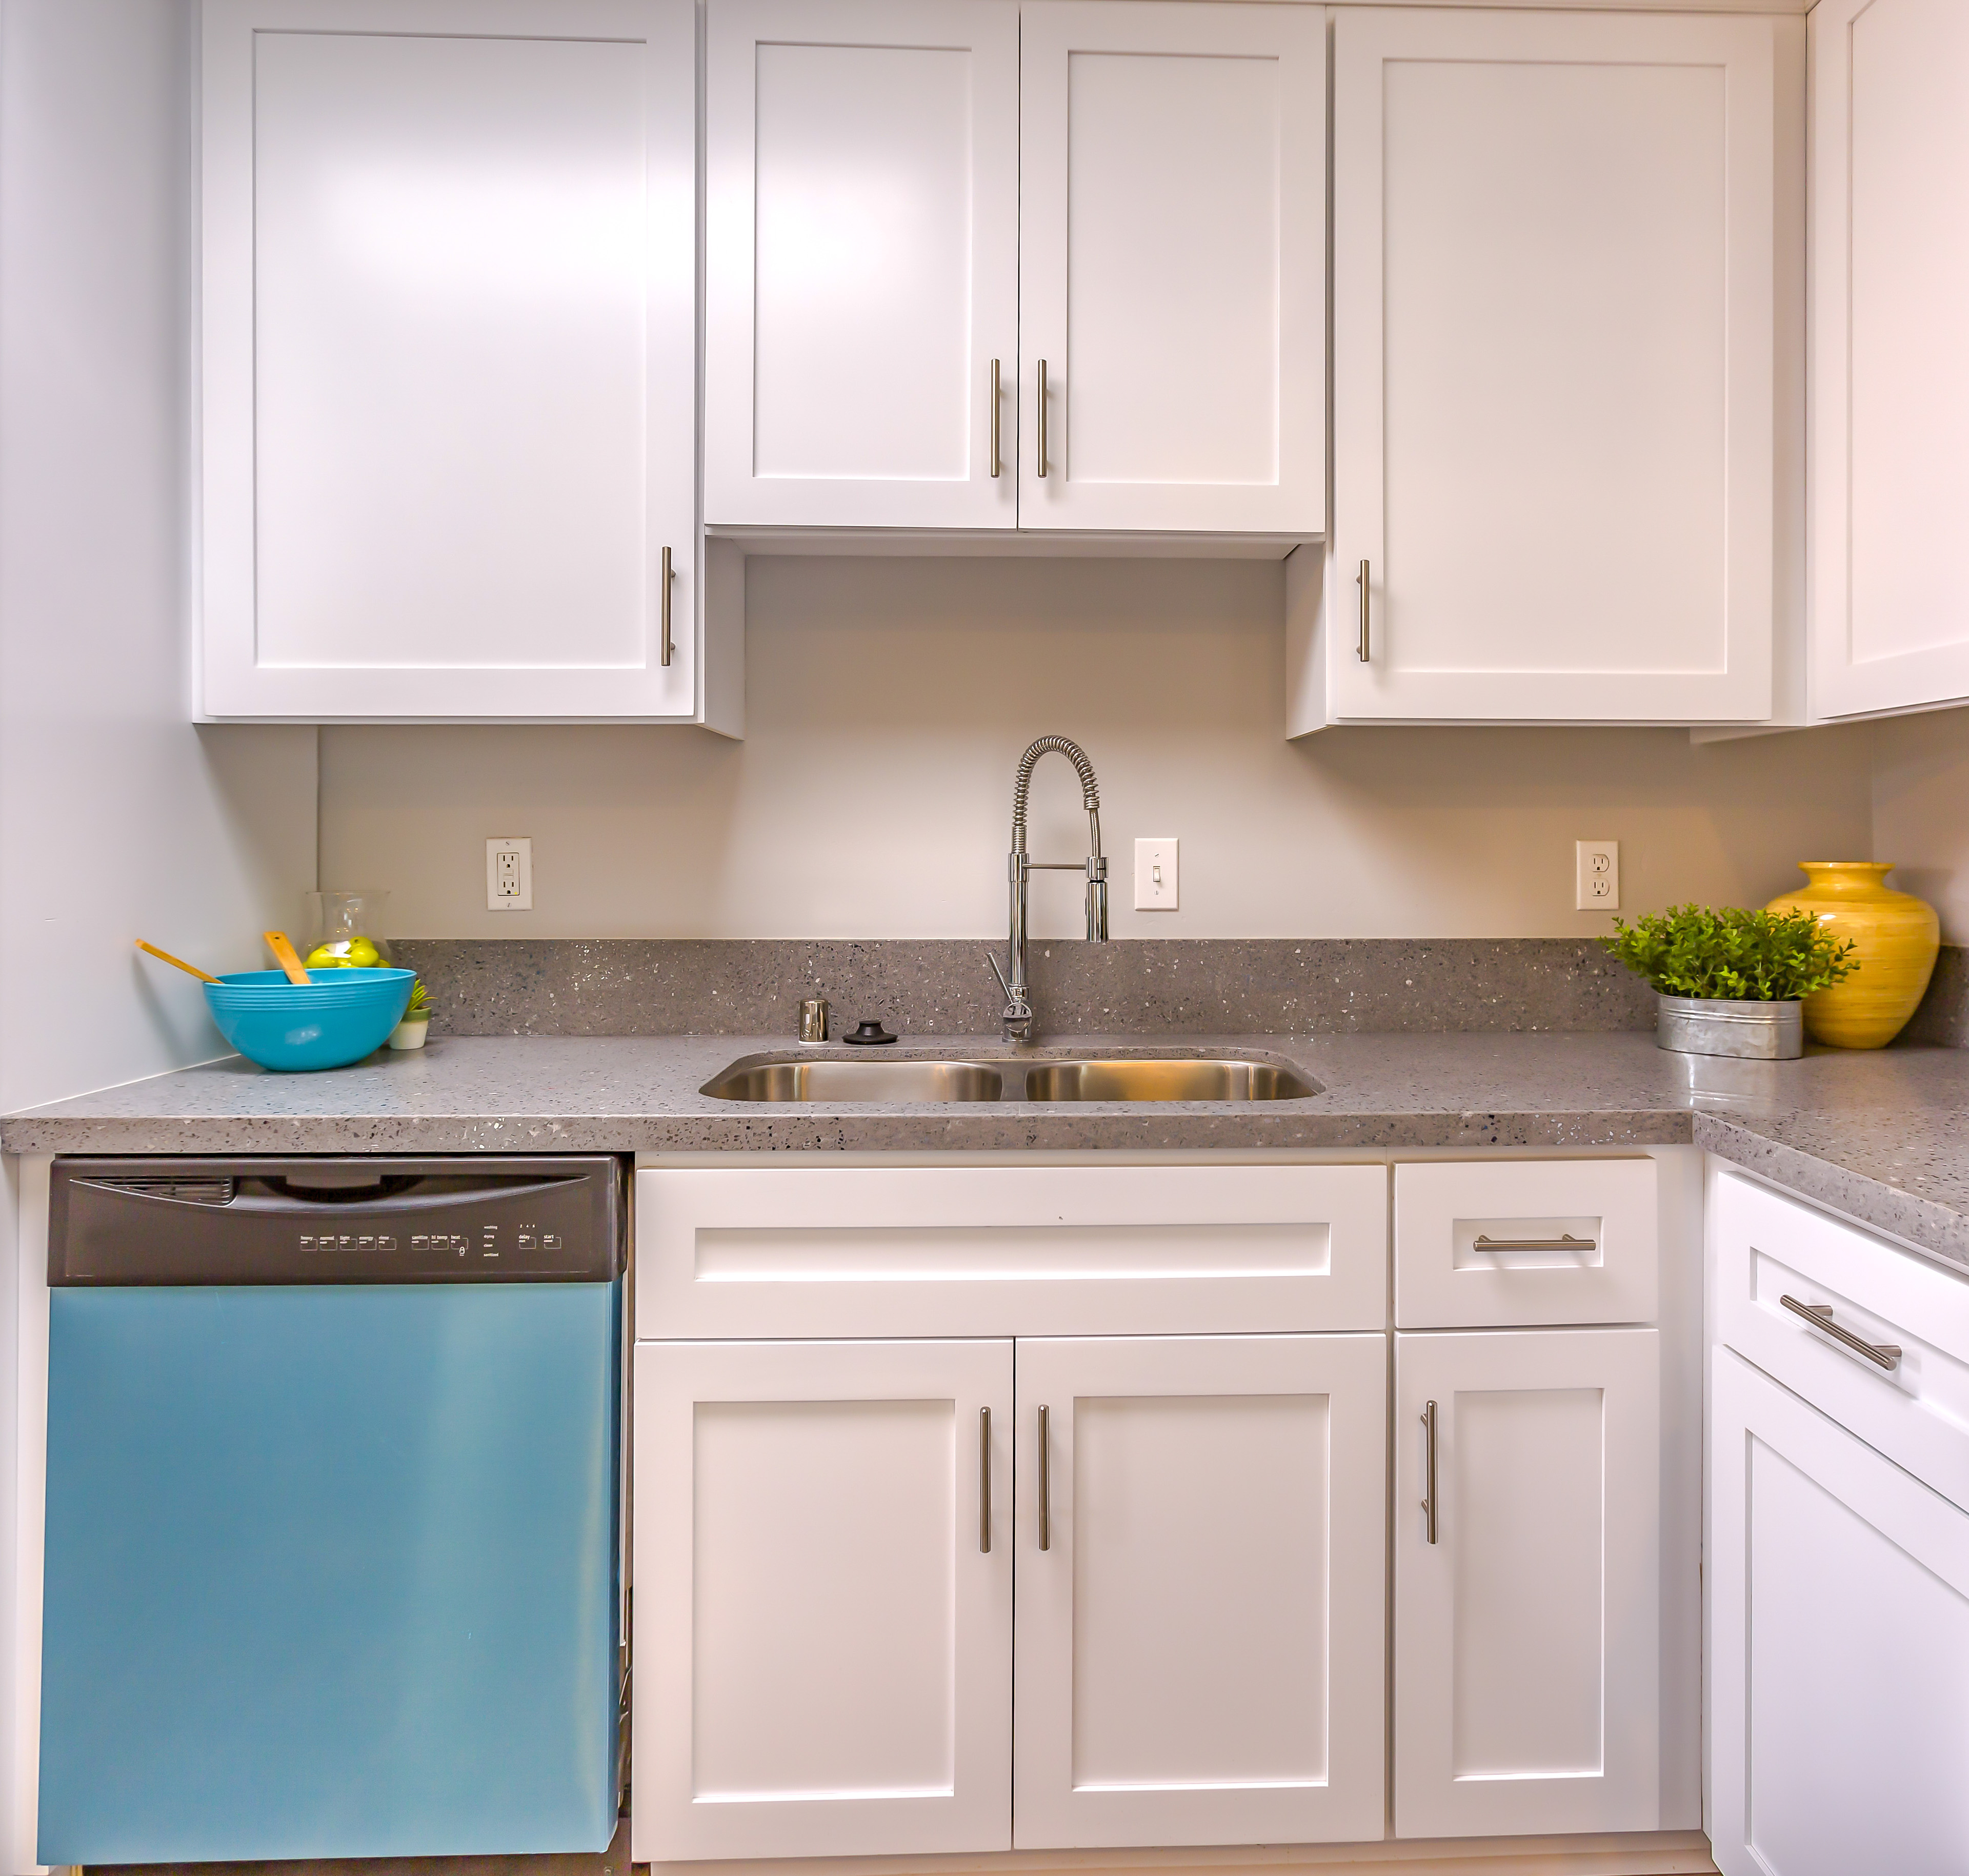 Kitchen Cabinet Refacing From Select Floors in Sandy Springs 770-218-3462